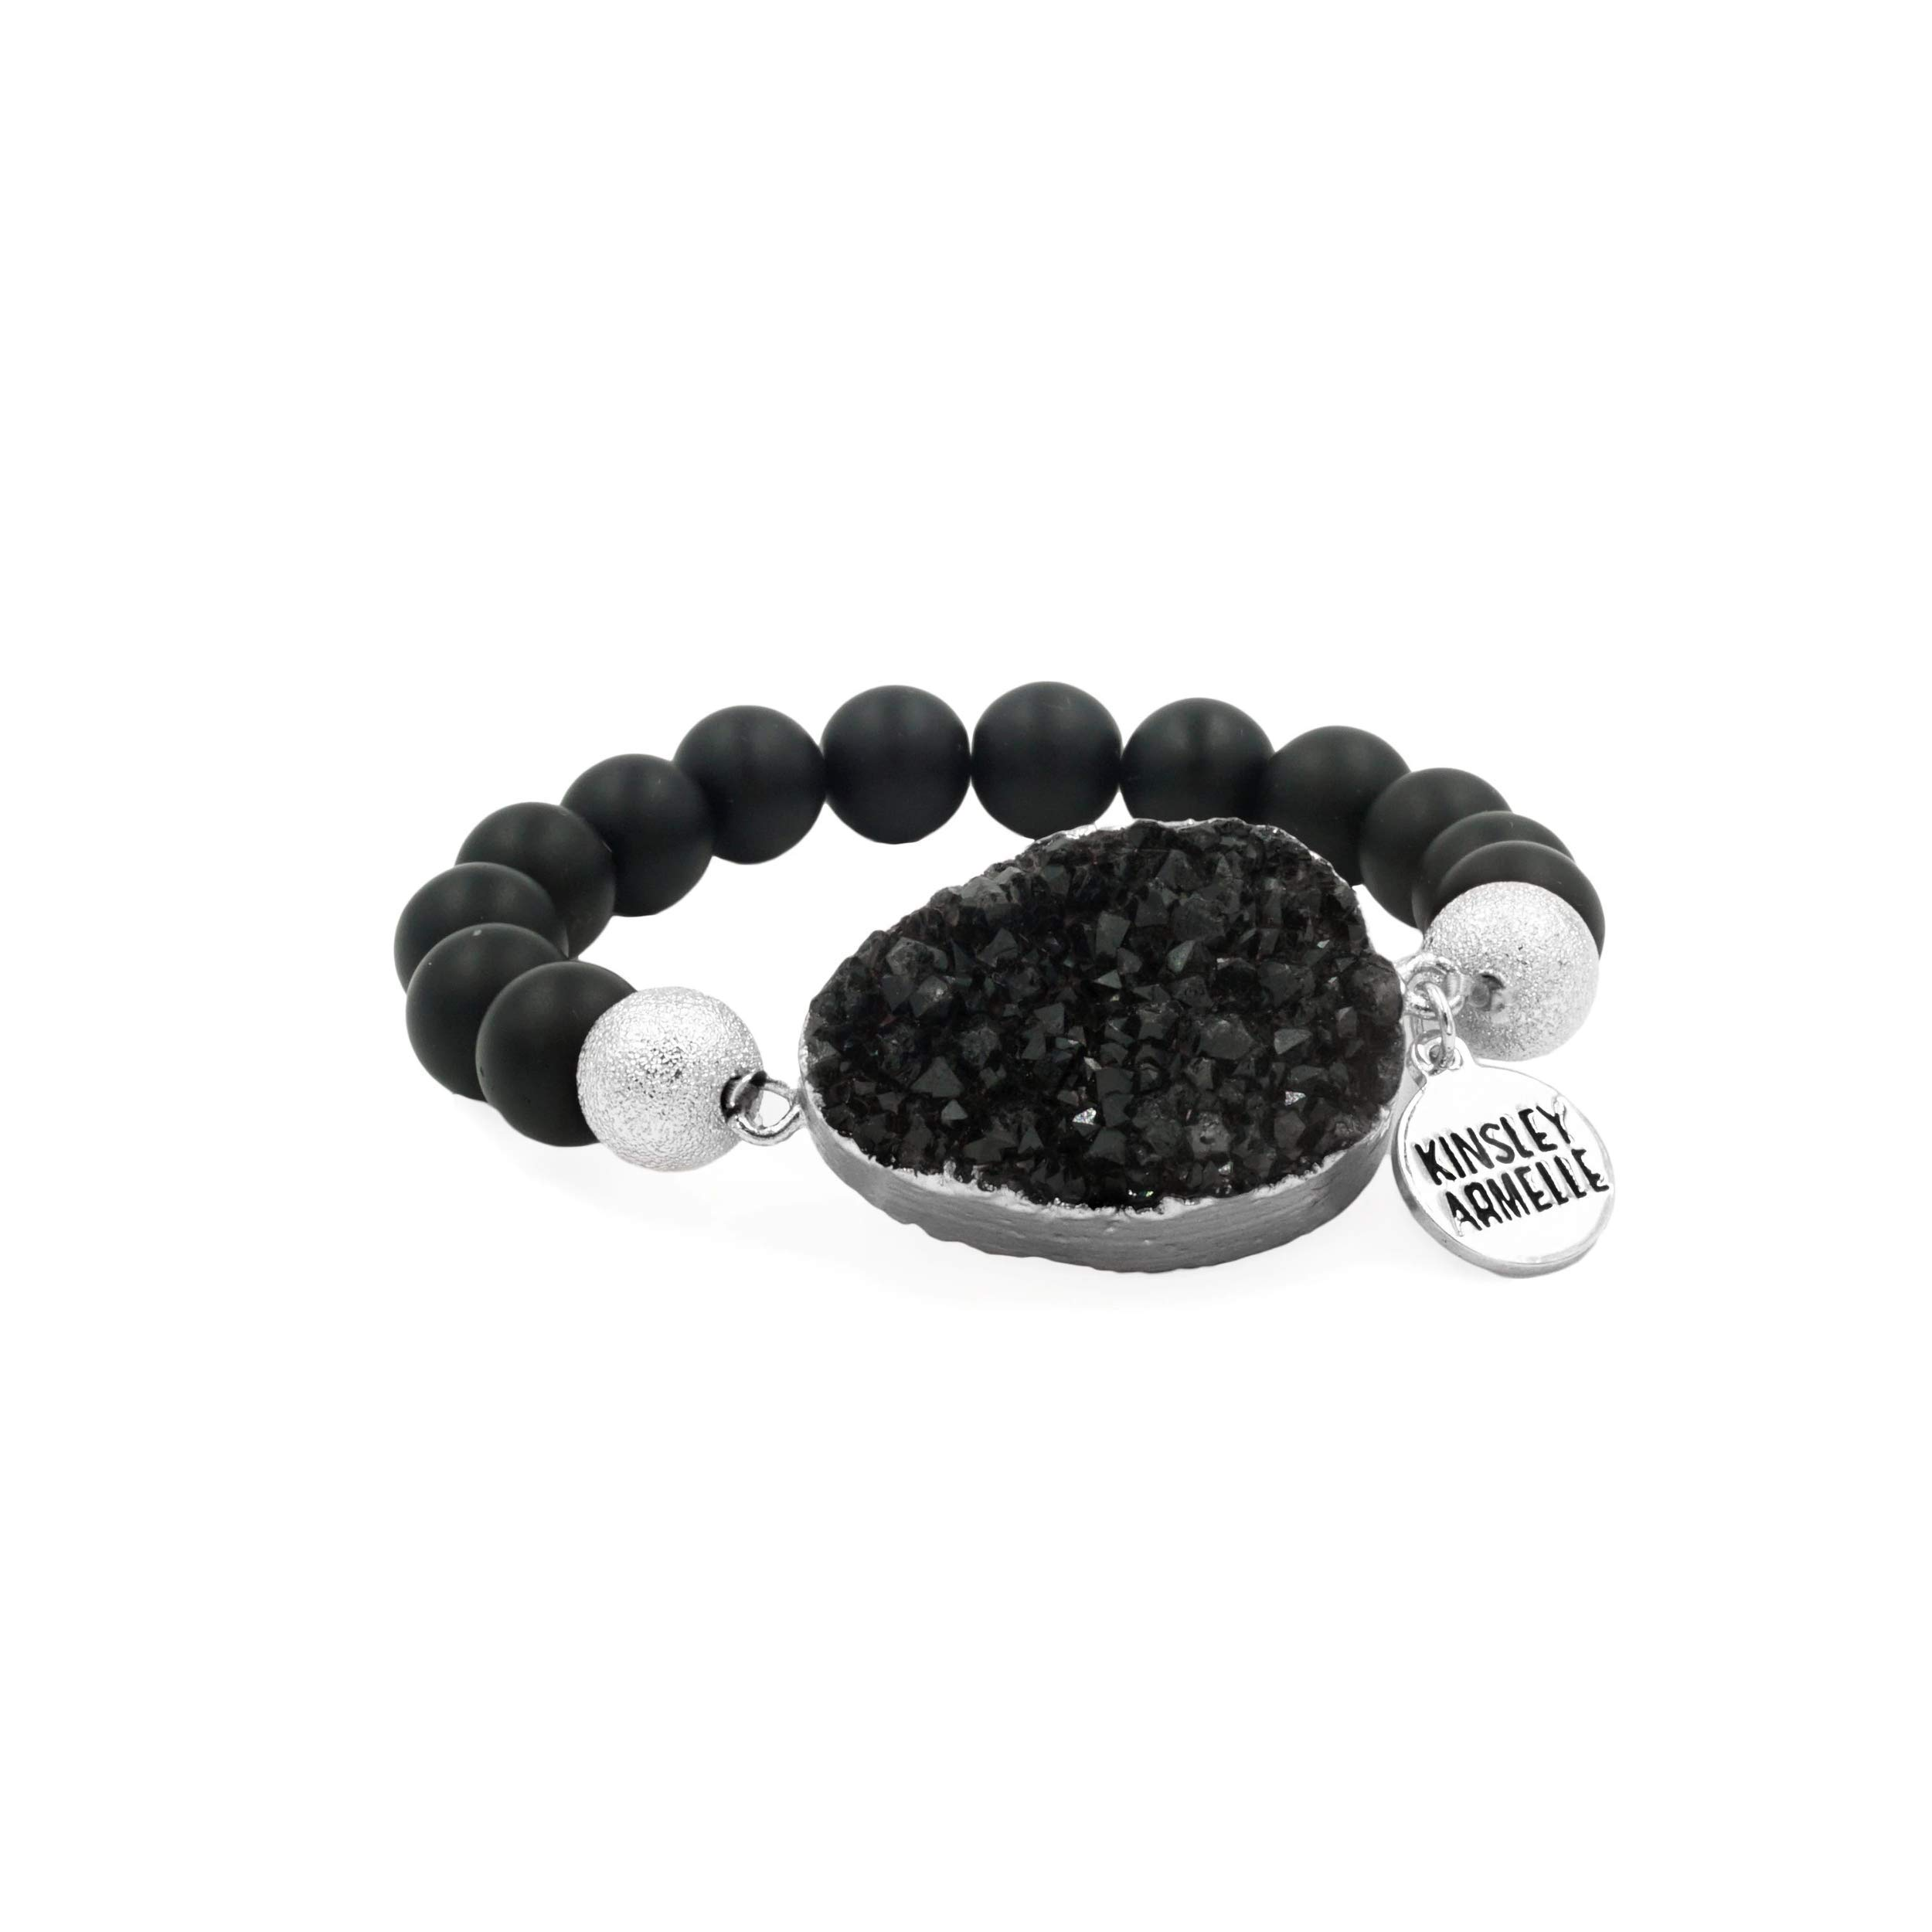 Kinsley Armelle Stone Collection - Silver Coal Bracelet by Kinsley Armelle